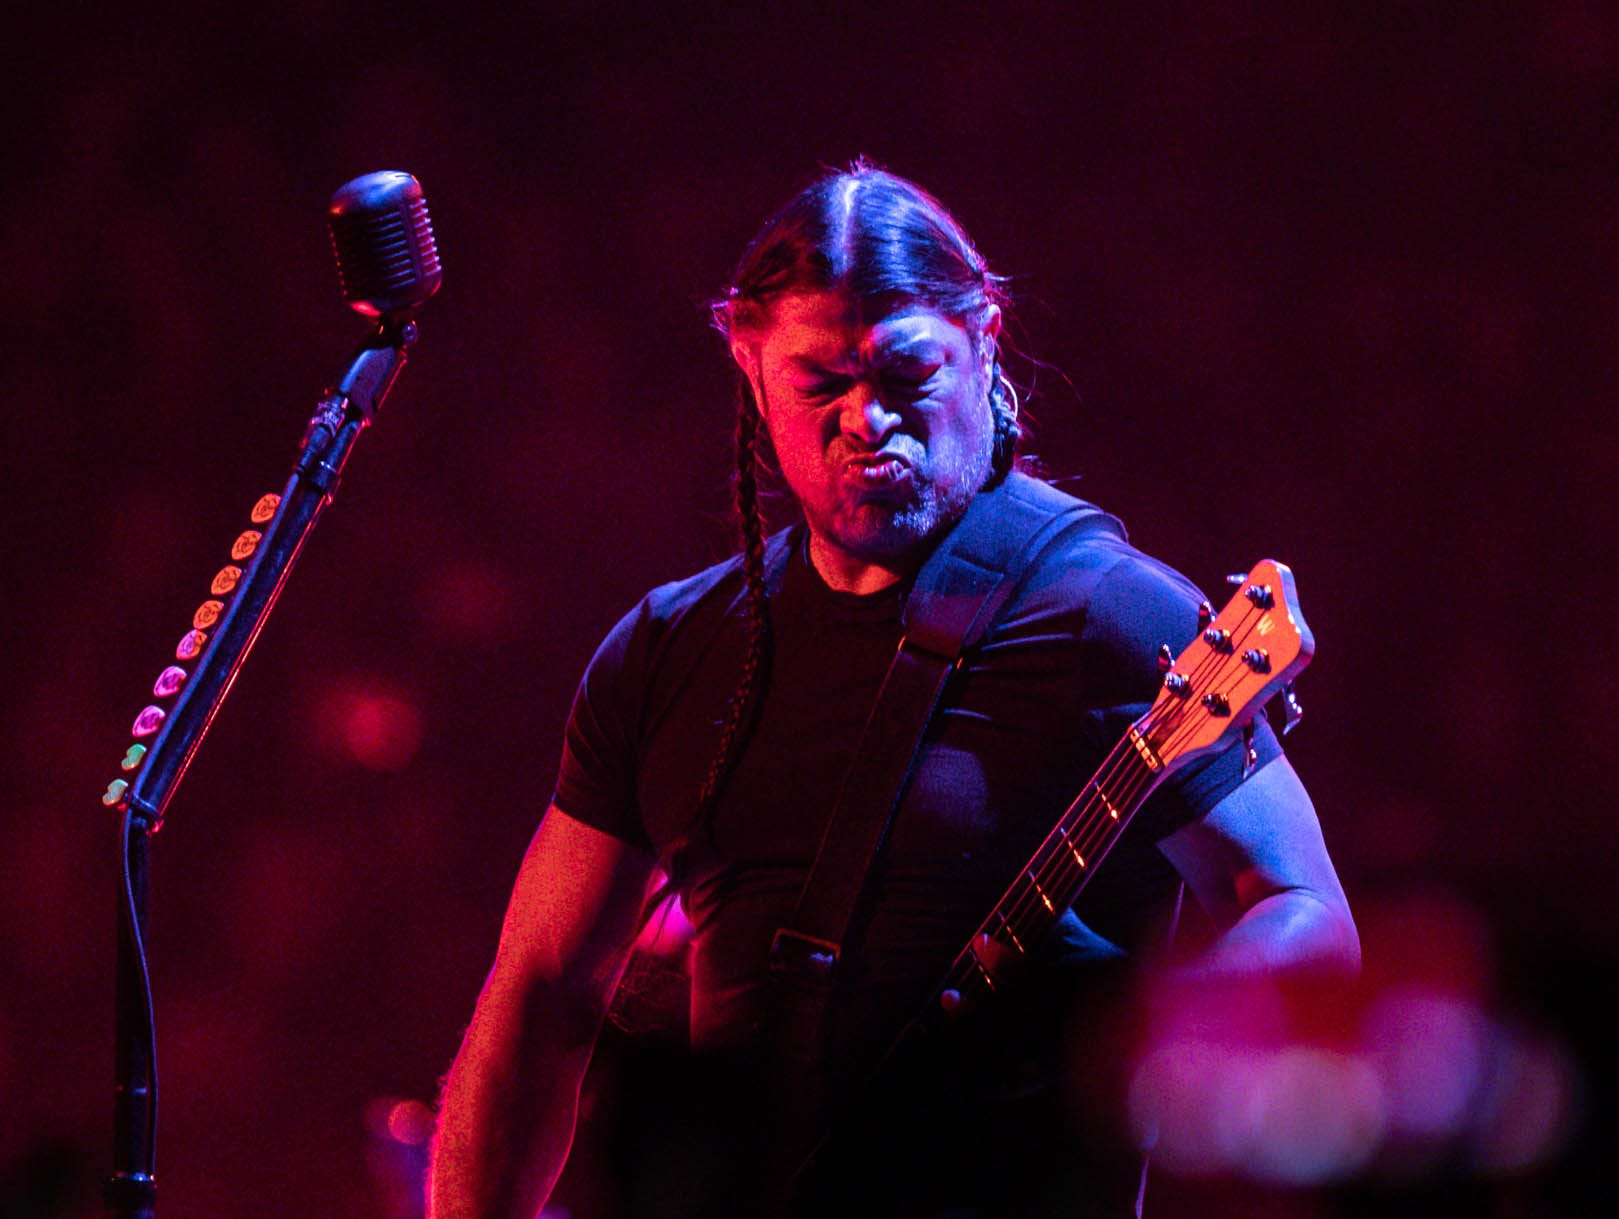 Metallica member Robert Trujillo performs as the band brings their WorldWired Tour to Bankers Life Fieldhouse on Monday, March 11, 2019.